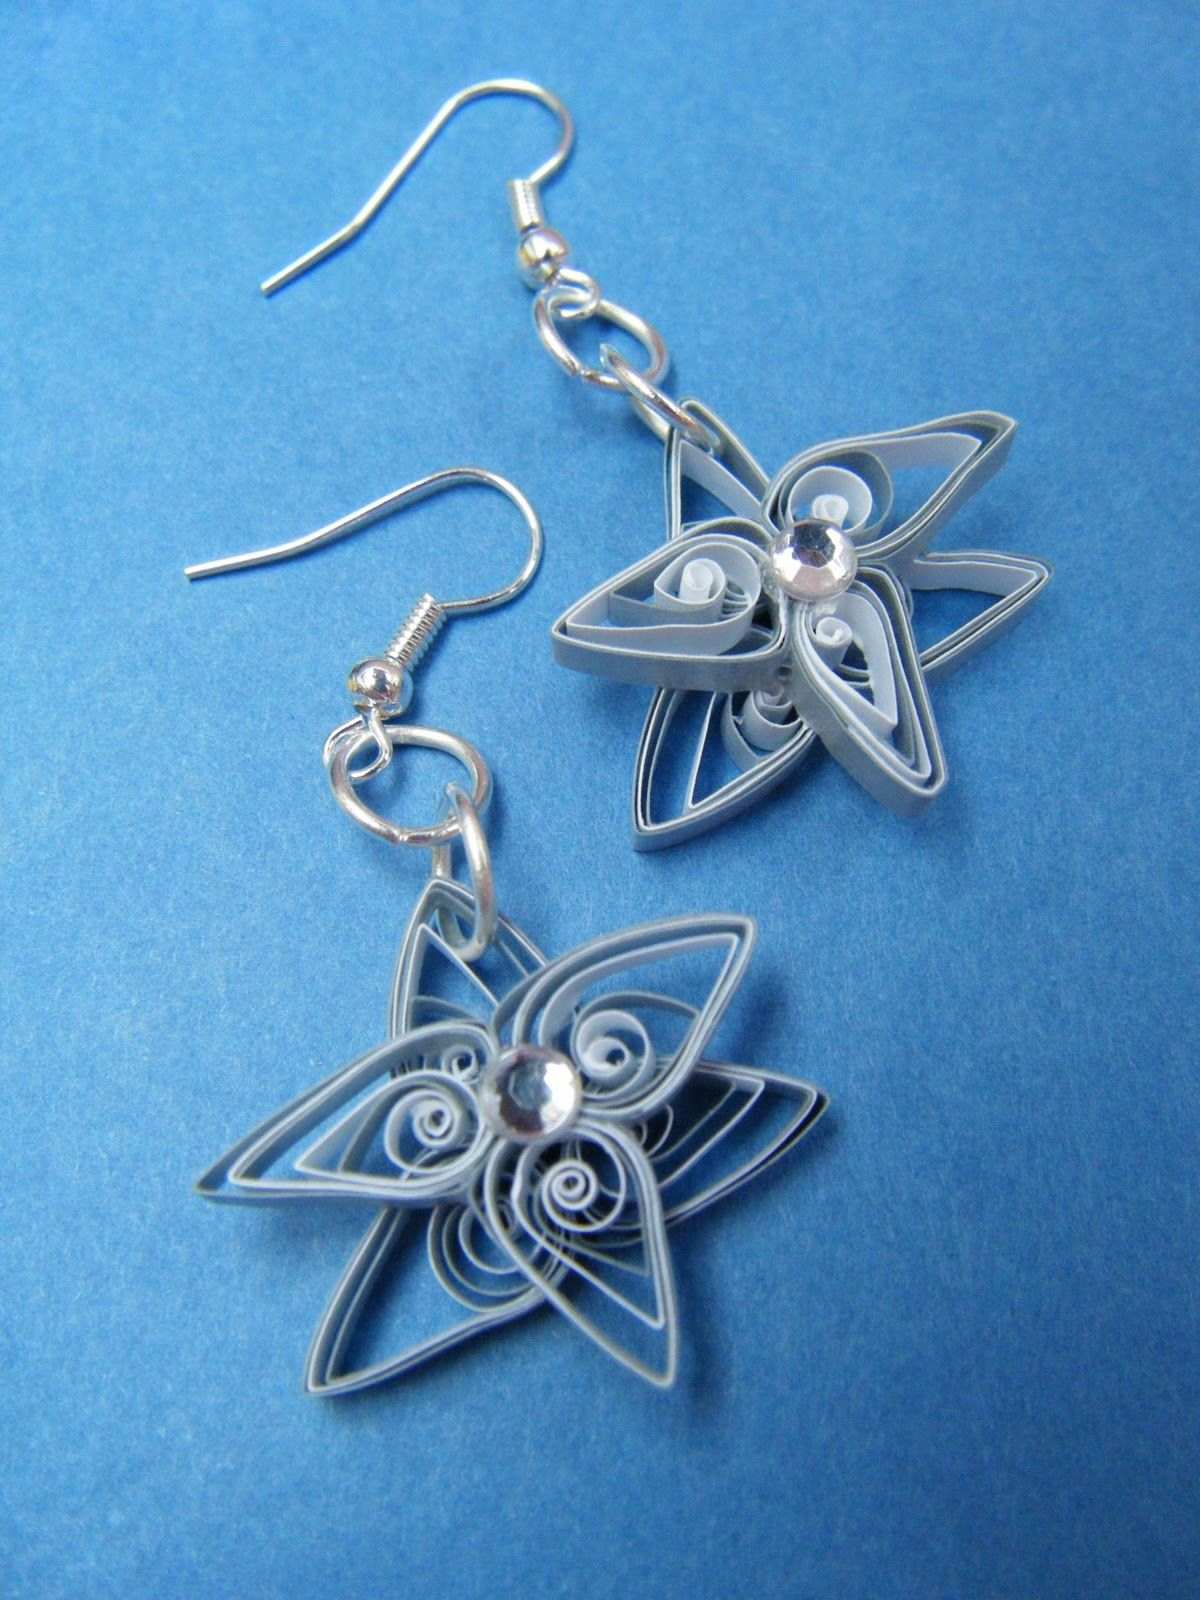 Quilling Earrings More Designs : paper quilled earrings - Google Search Quilling-Jewelry Pinterest Quilling, Google search ...